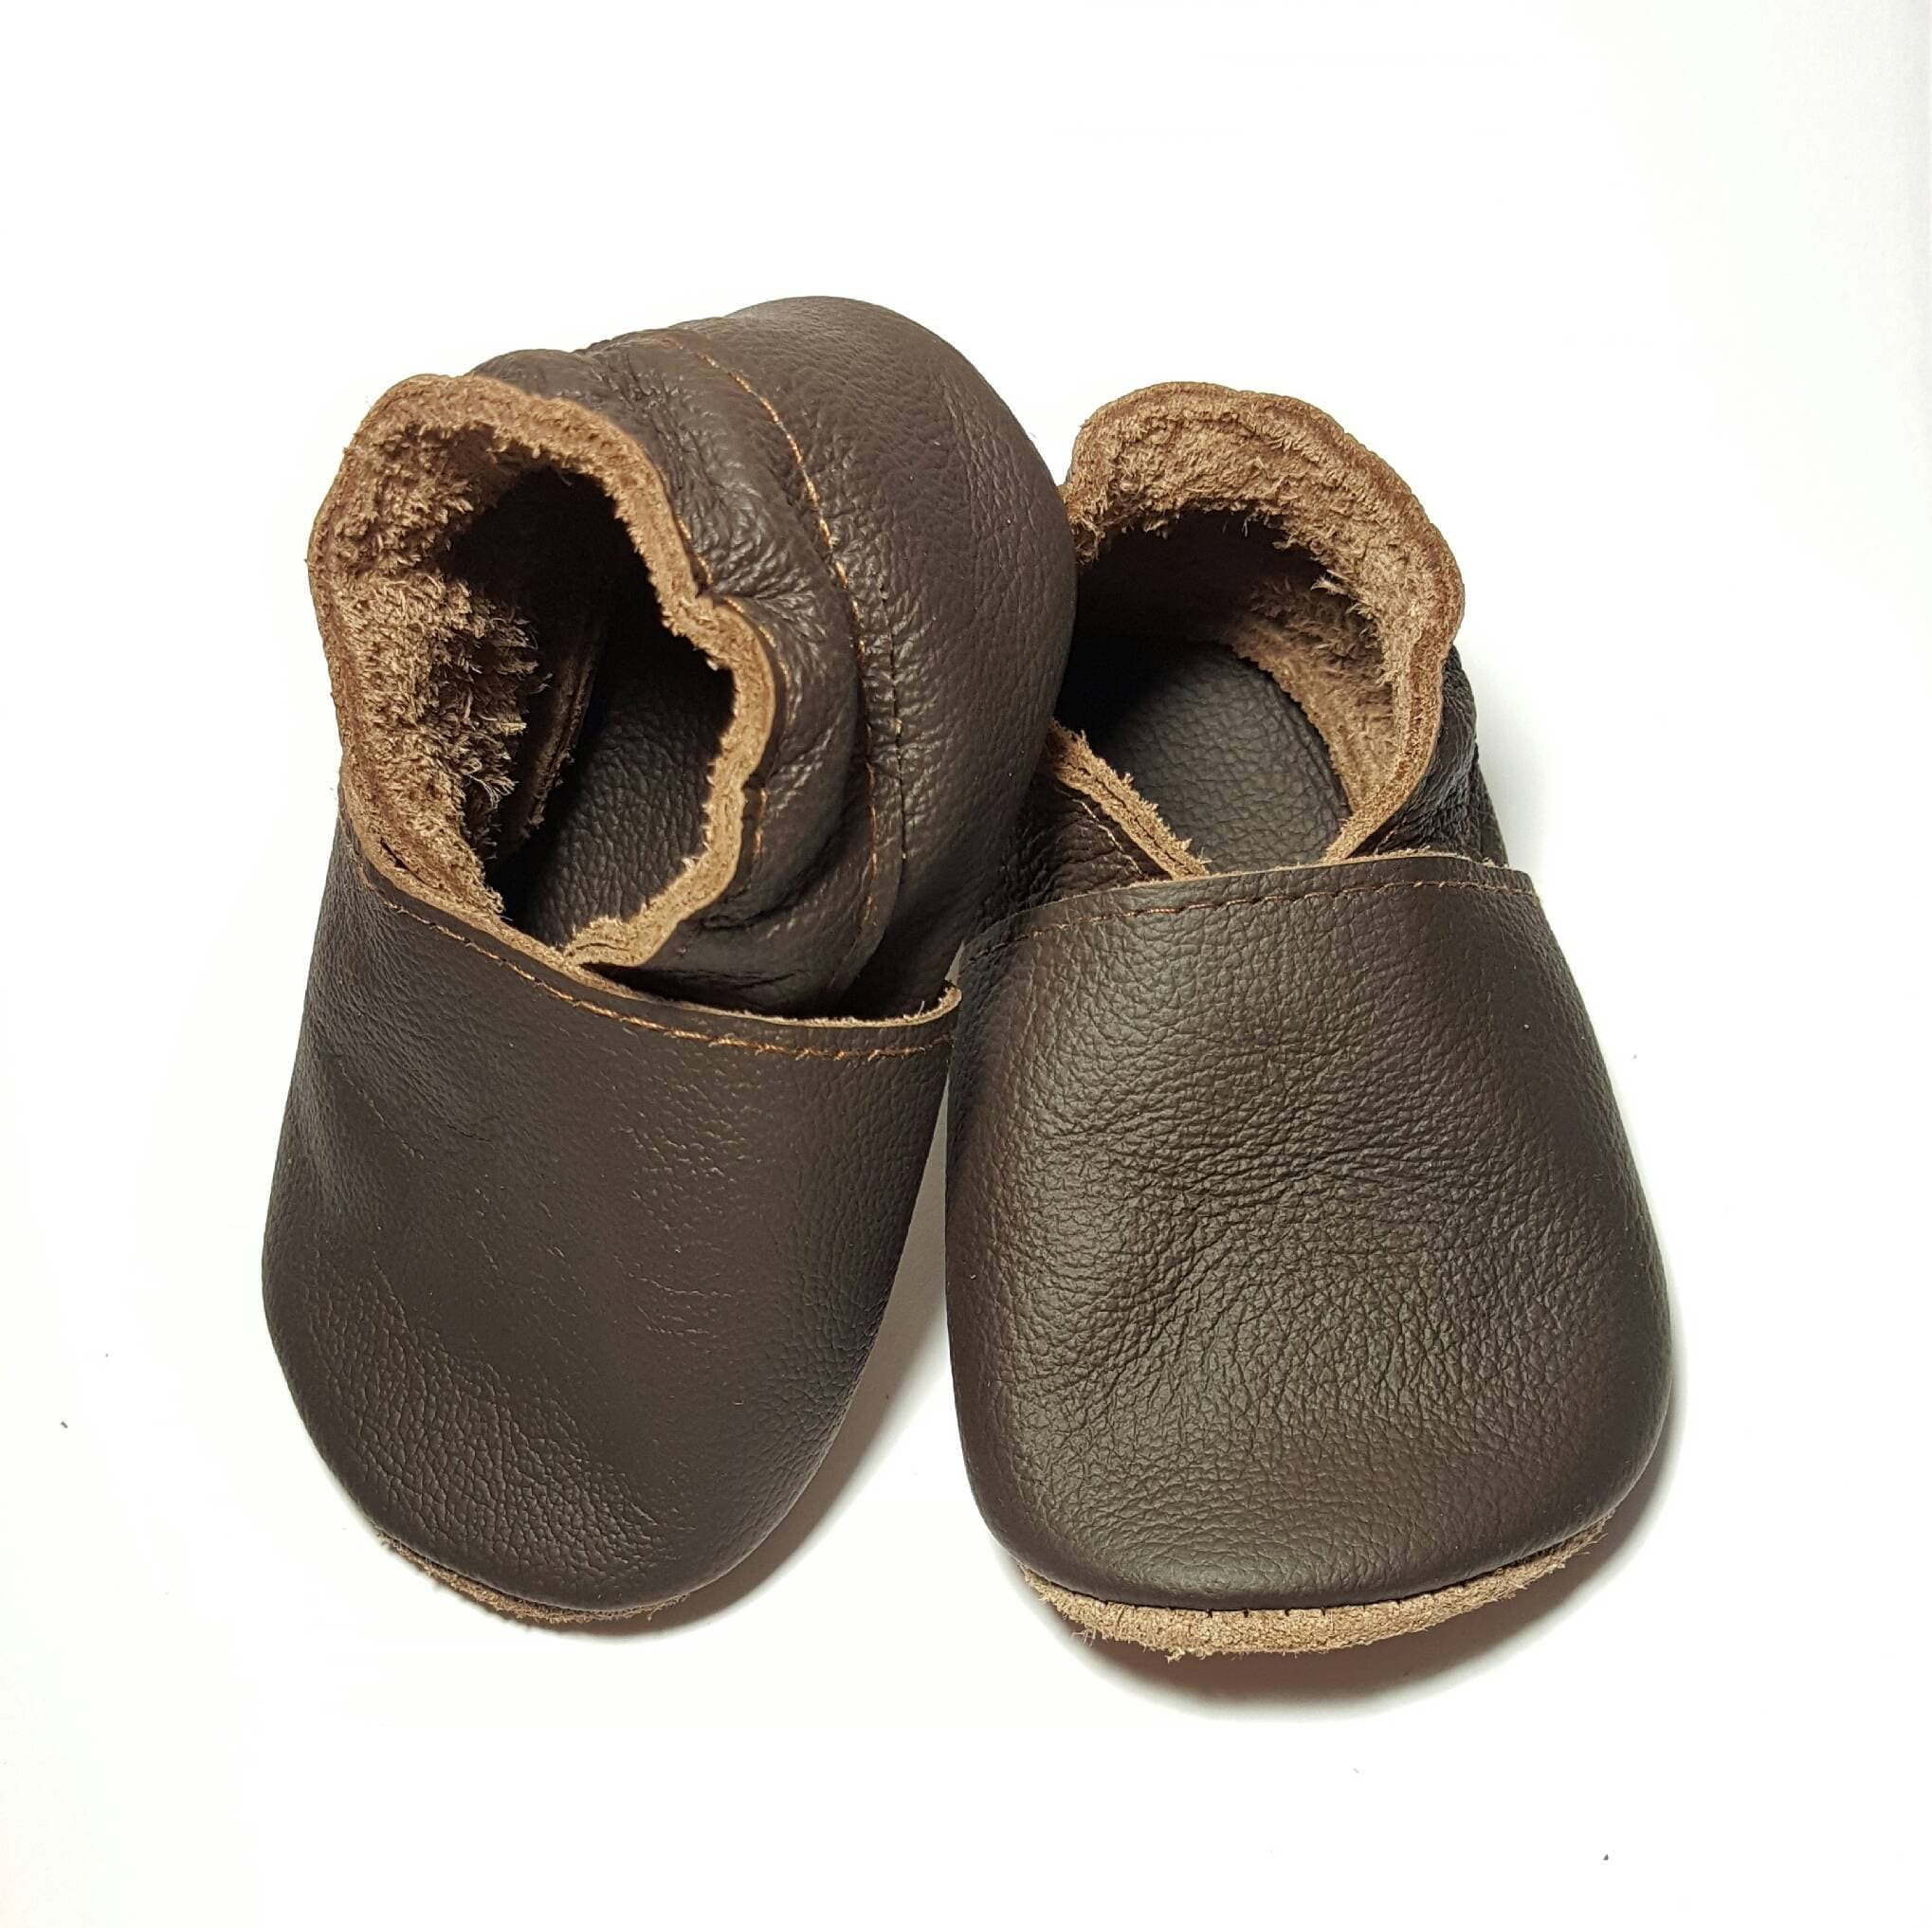 HOT SALE Chocolate brown soft sole leather baby shoes soft